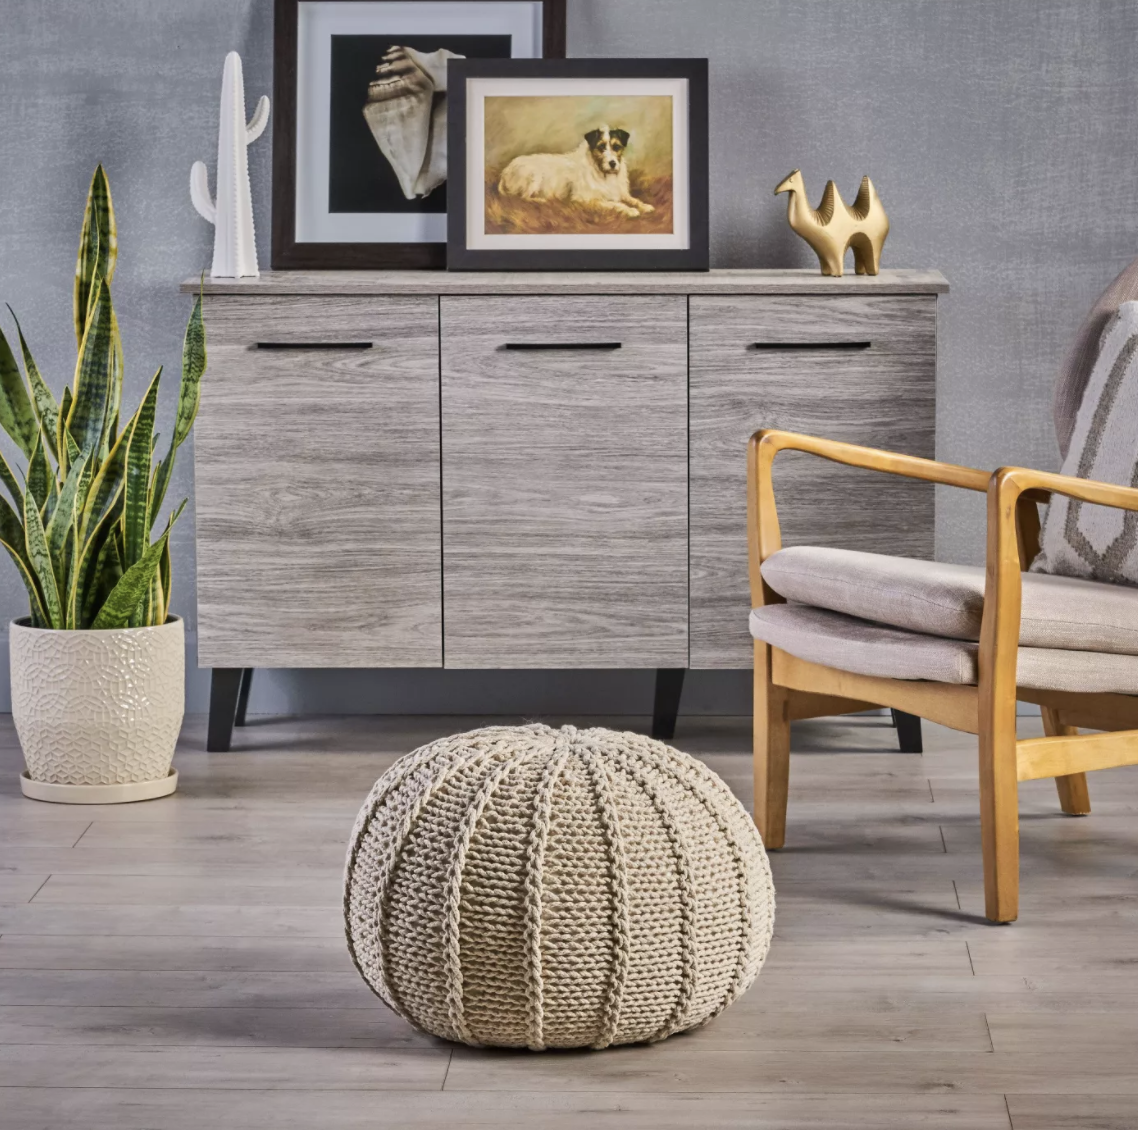 a tan knit pouf in a living room